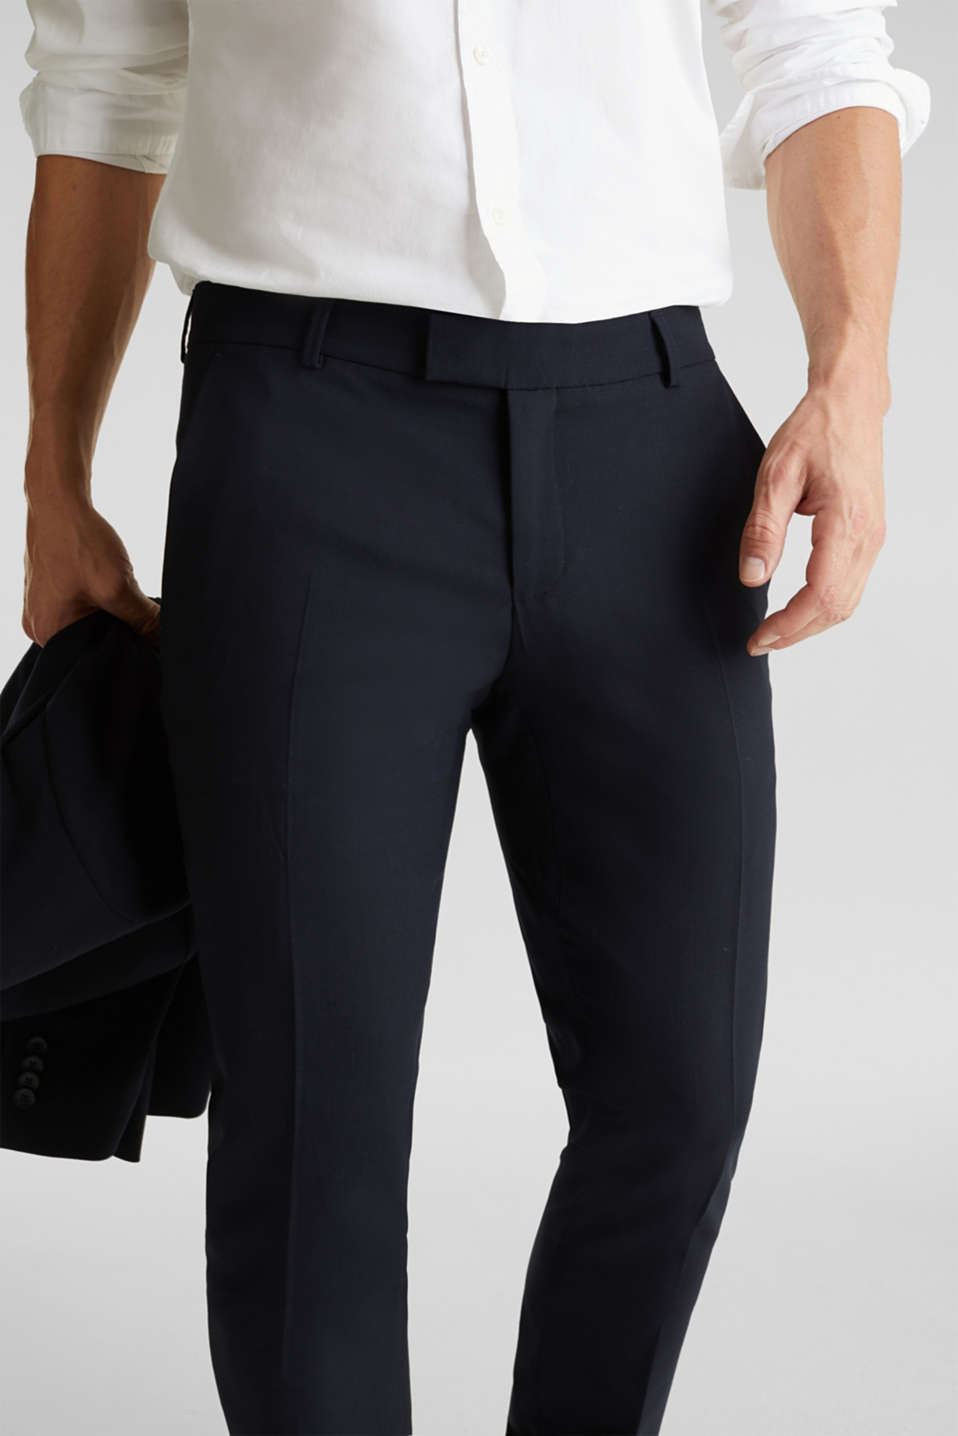 ACTIVE SUIT BLACK trousers made of blended wool, DARK BLUE, detail image number 2